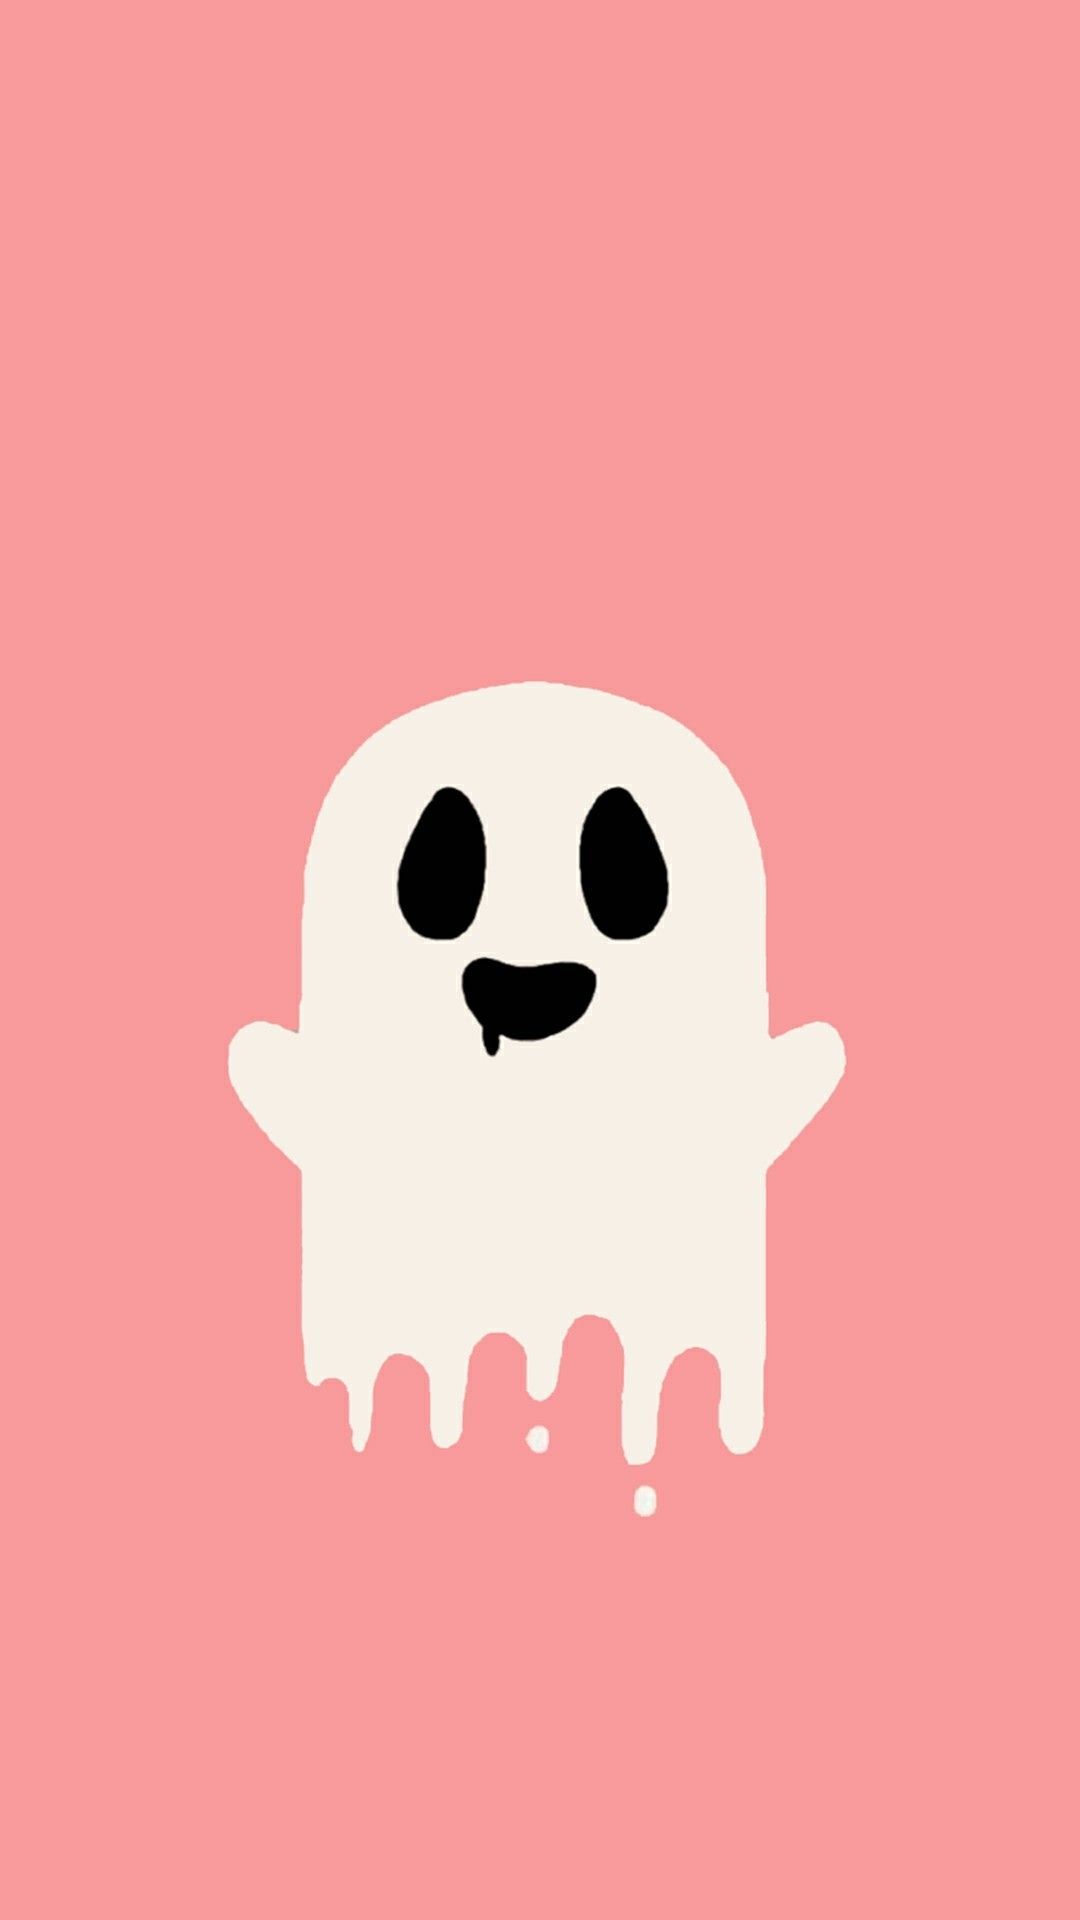 1080x1920 63+ Kawaii Halloween Wallpapers on WallpaperPlay